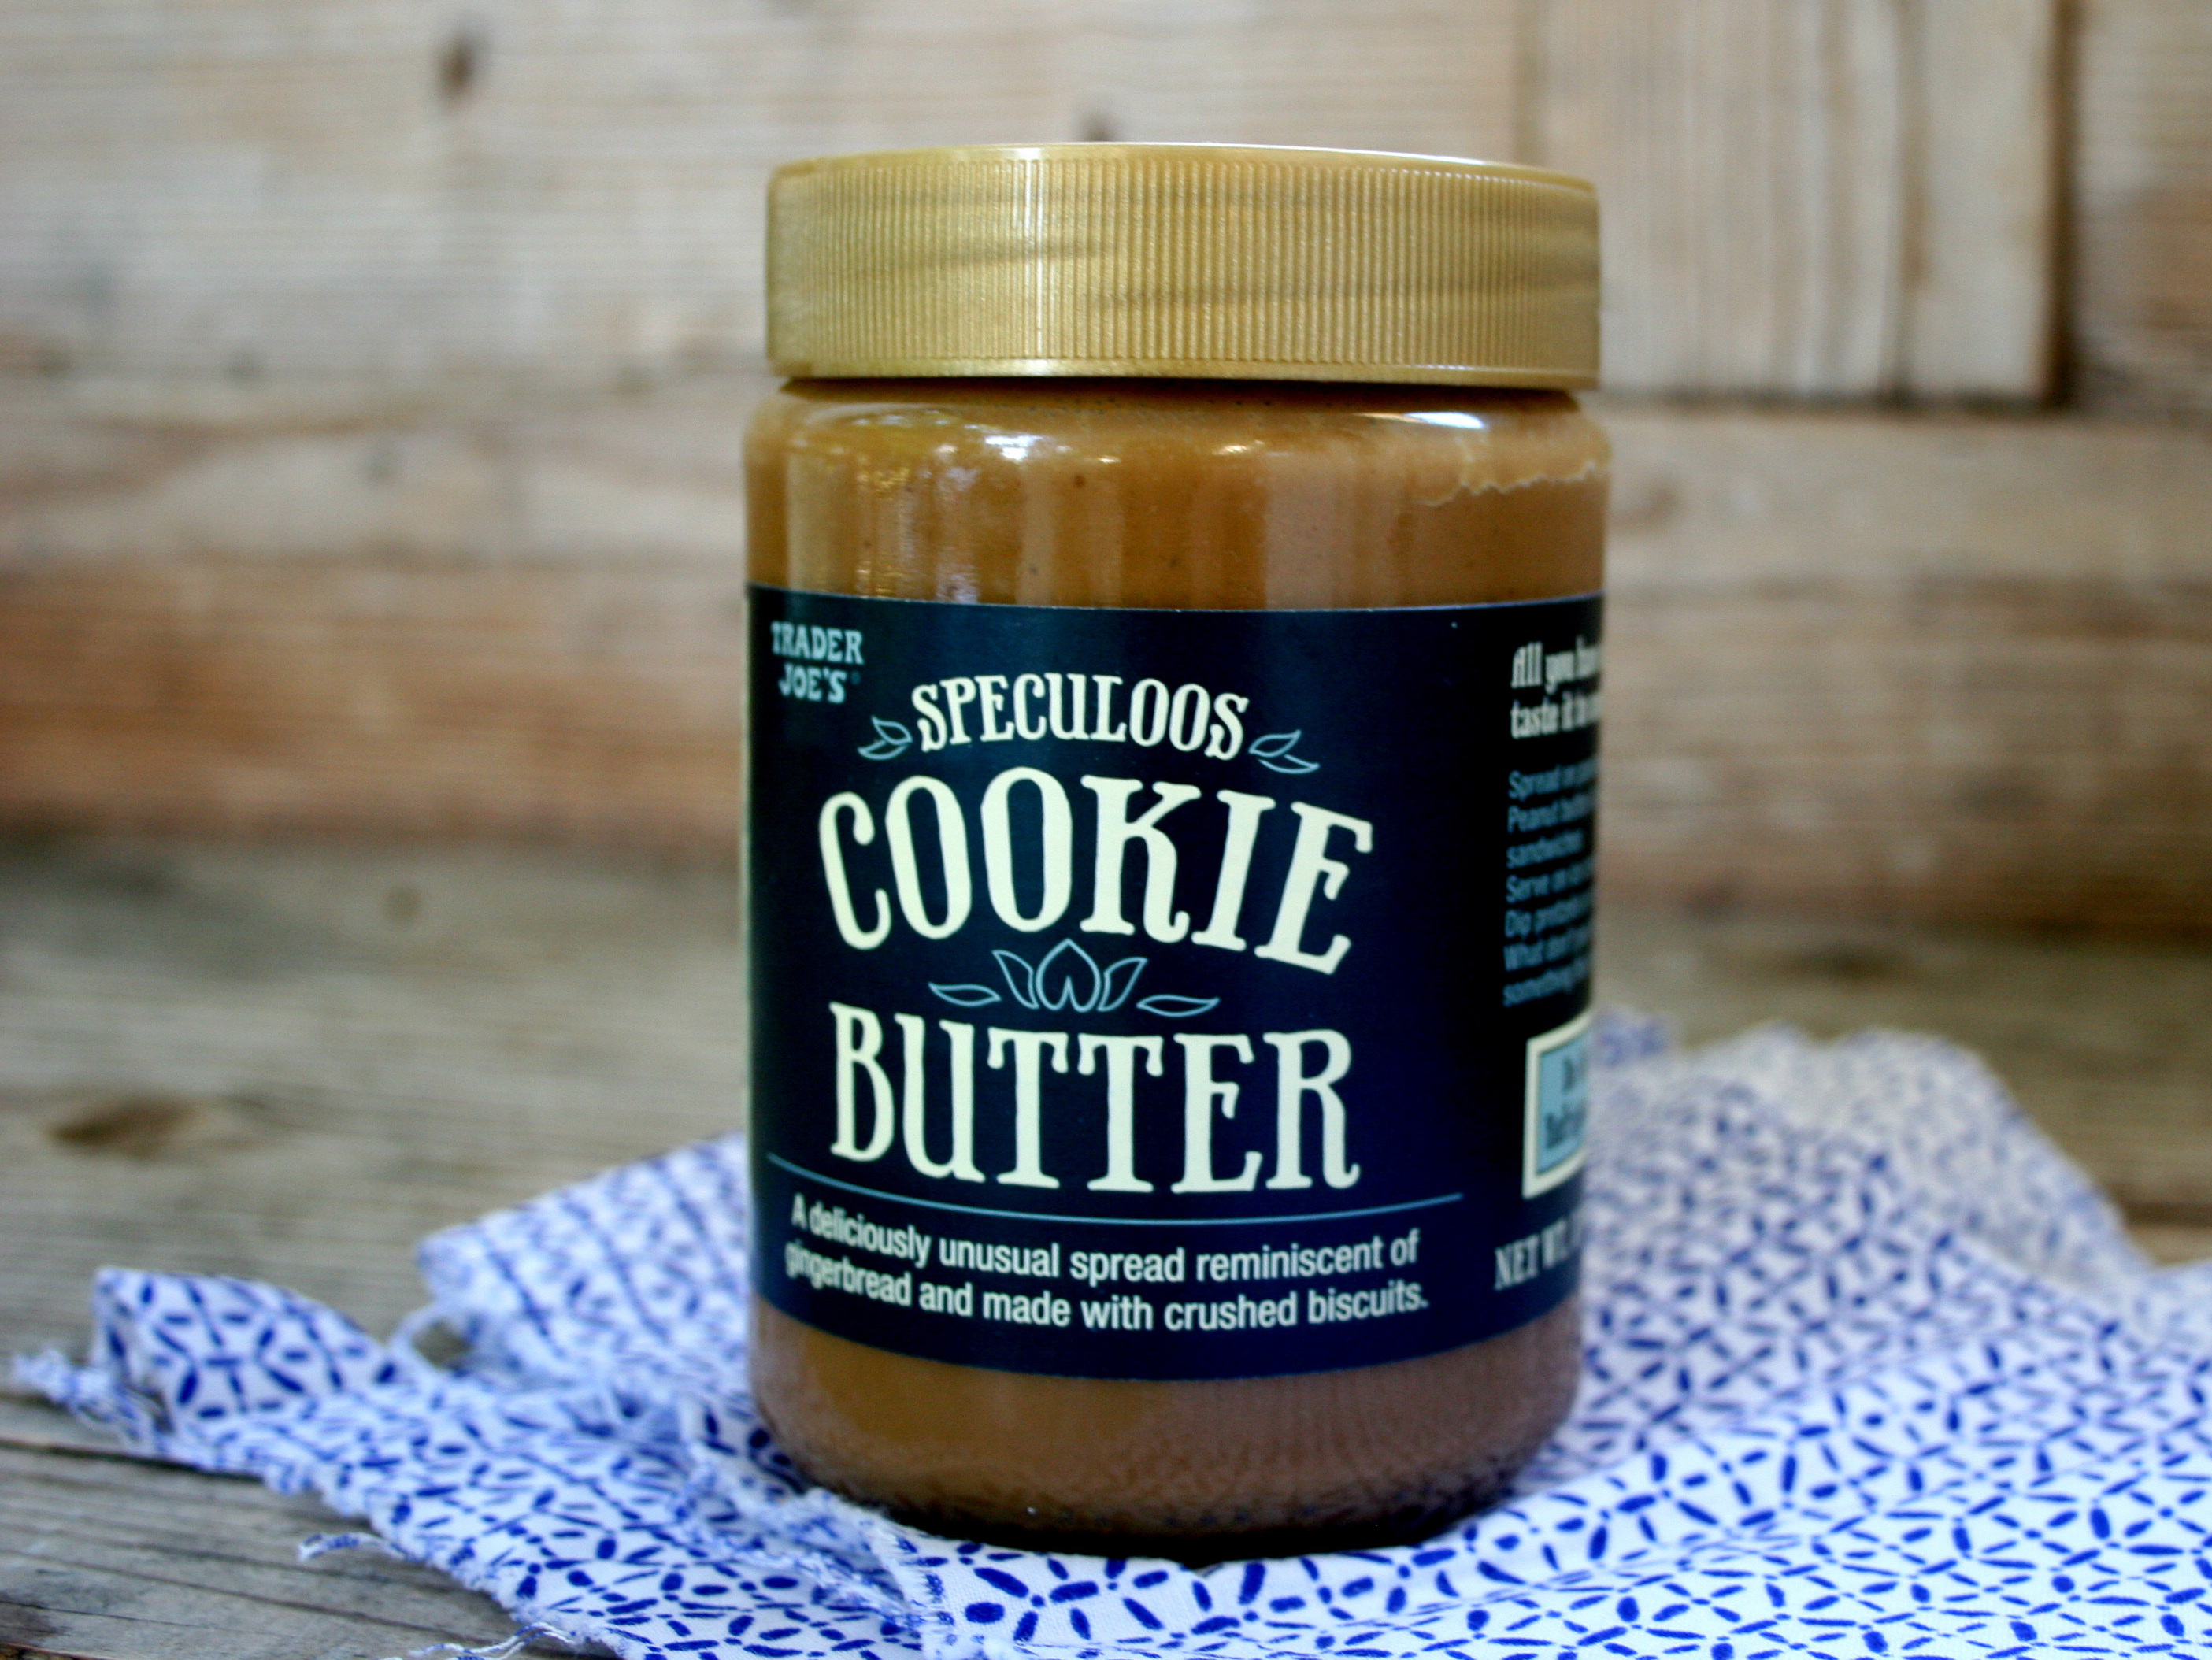 Speculoos Cookie Butter can be found at stores like Trader Joe's and online. (An online search for recipes for homemade versions turns up some interesting options, too.)